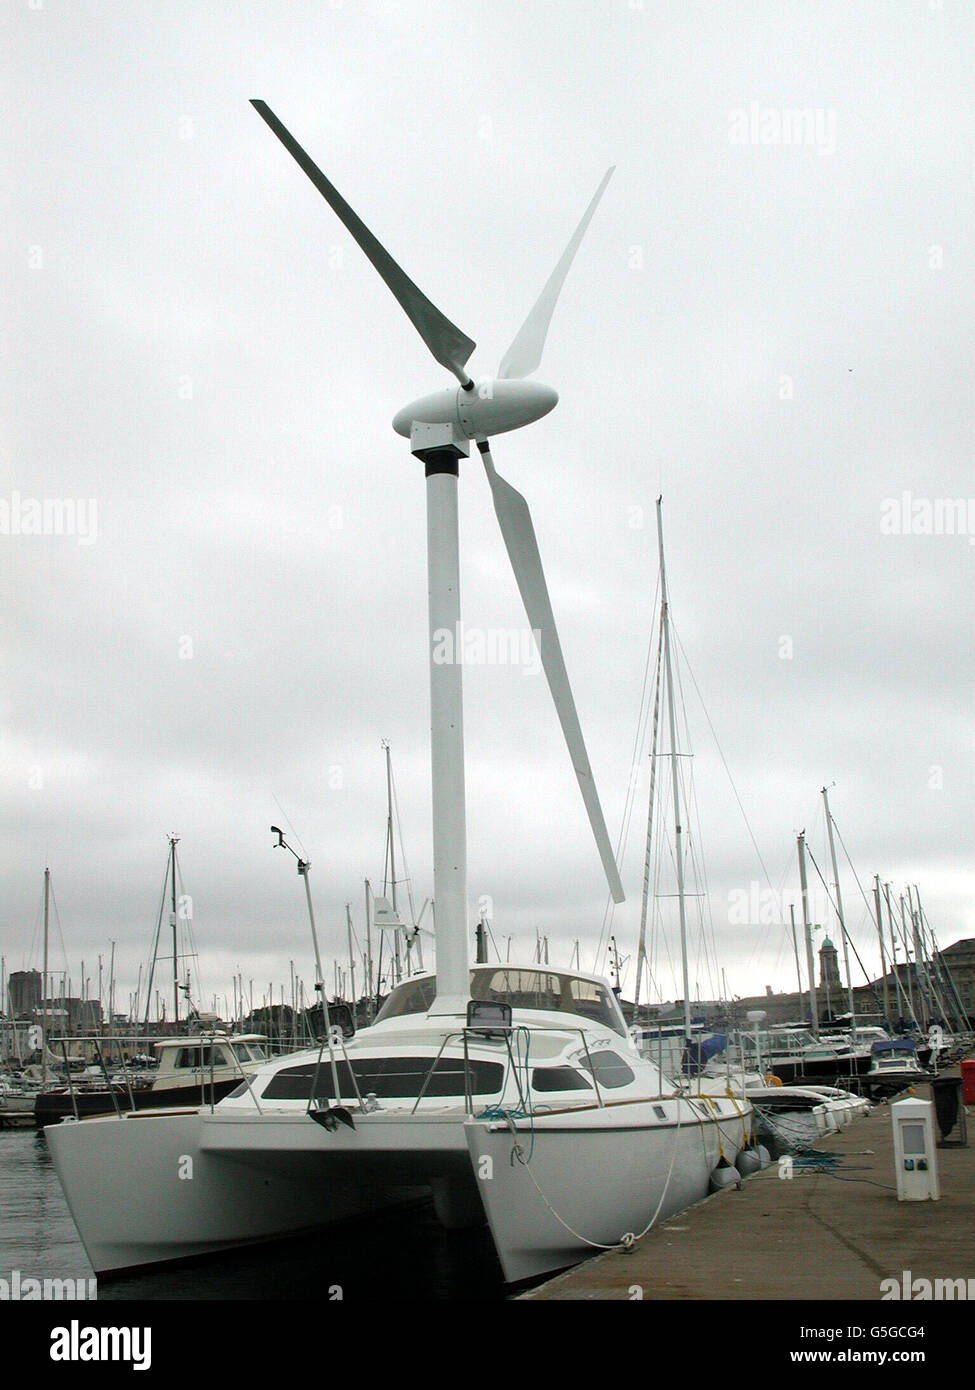 Windmill boat in Plymouth - Stock Image